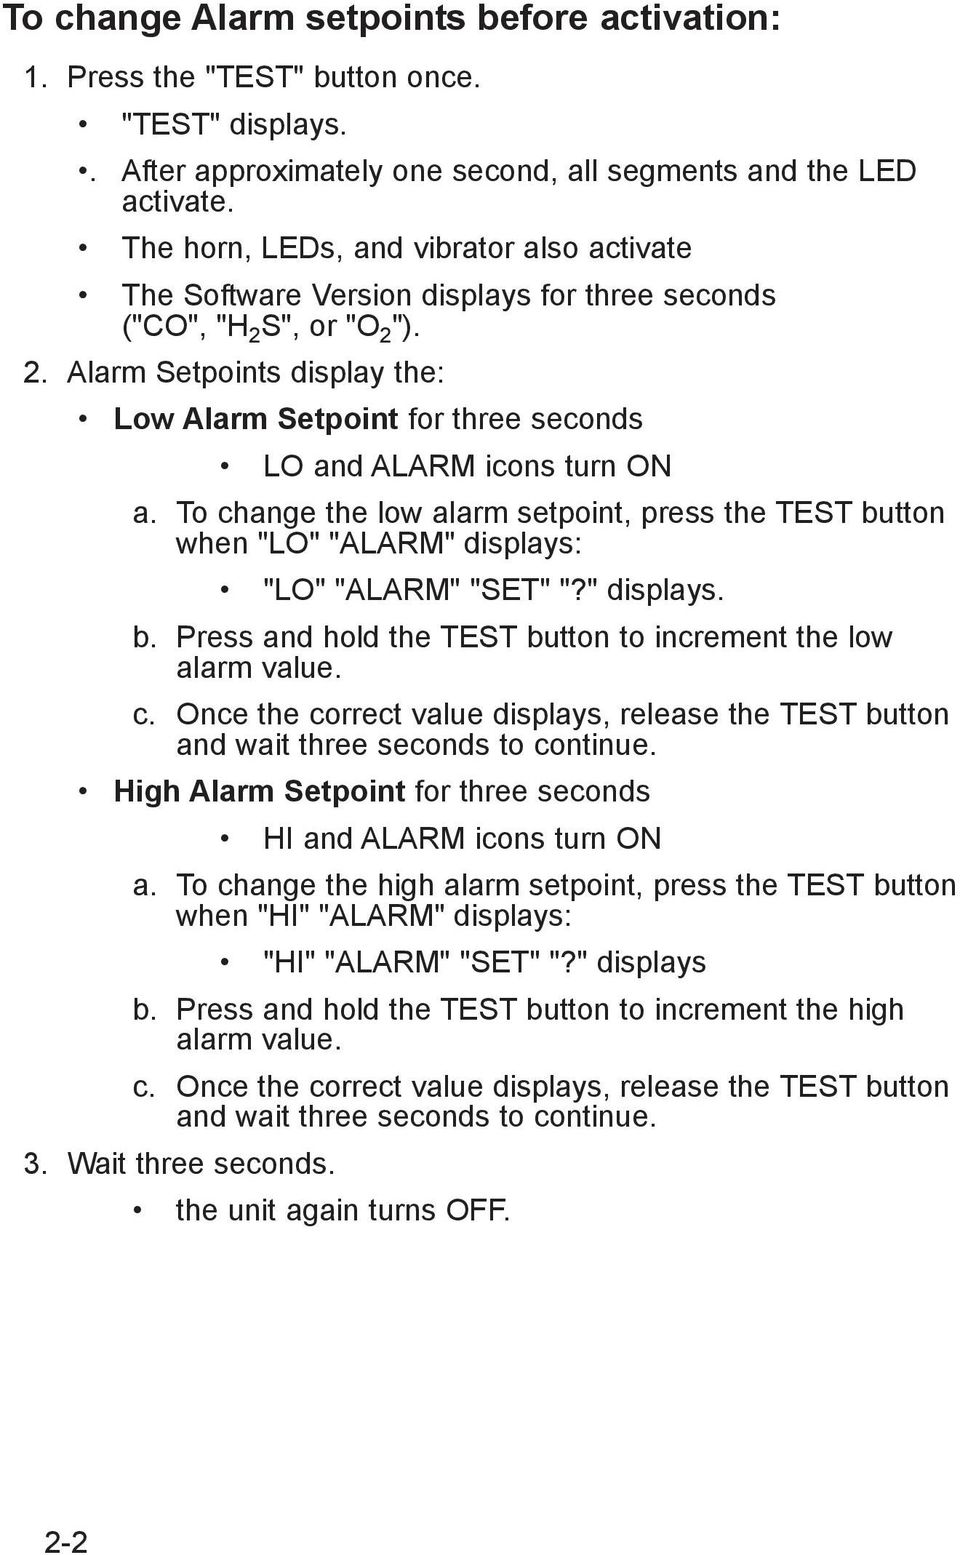 "To change the low alarm setpoint, press the TEST button when ""LO"" ""ALARM"" displays: ""LO"" ""ALARM"" ""SET"" ""?"" displays. b. Press and hold the TEST button to increment the low alarm value. c. Once the correct value displays, release the TEST button and wait three seconds to continue."